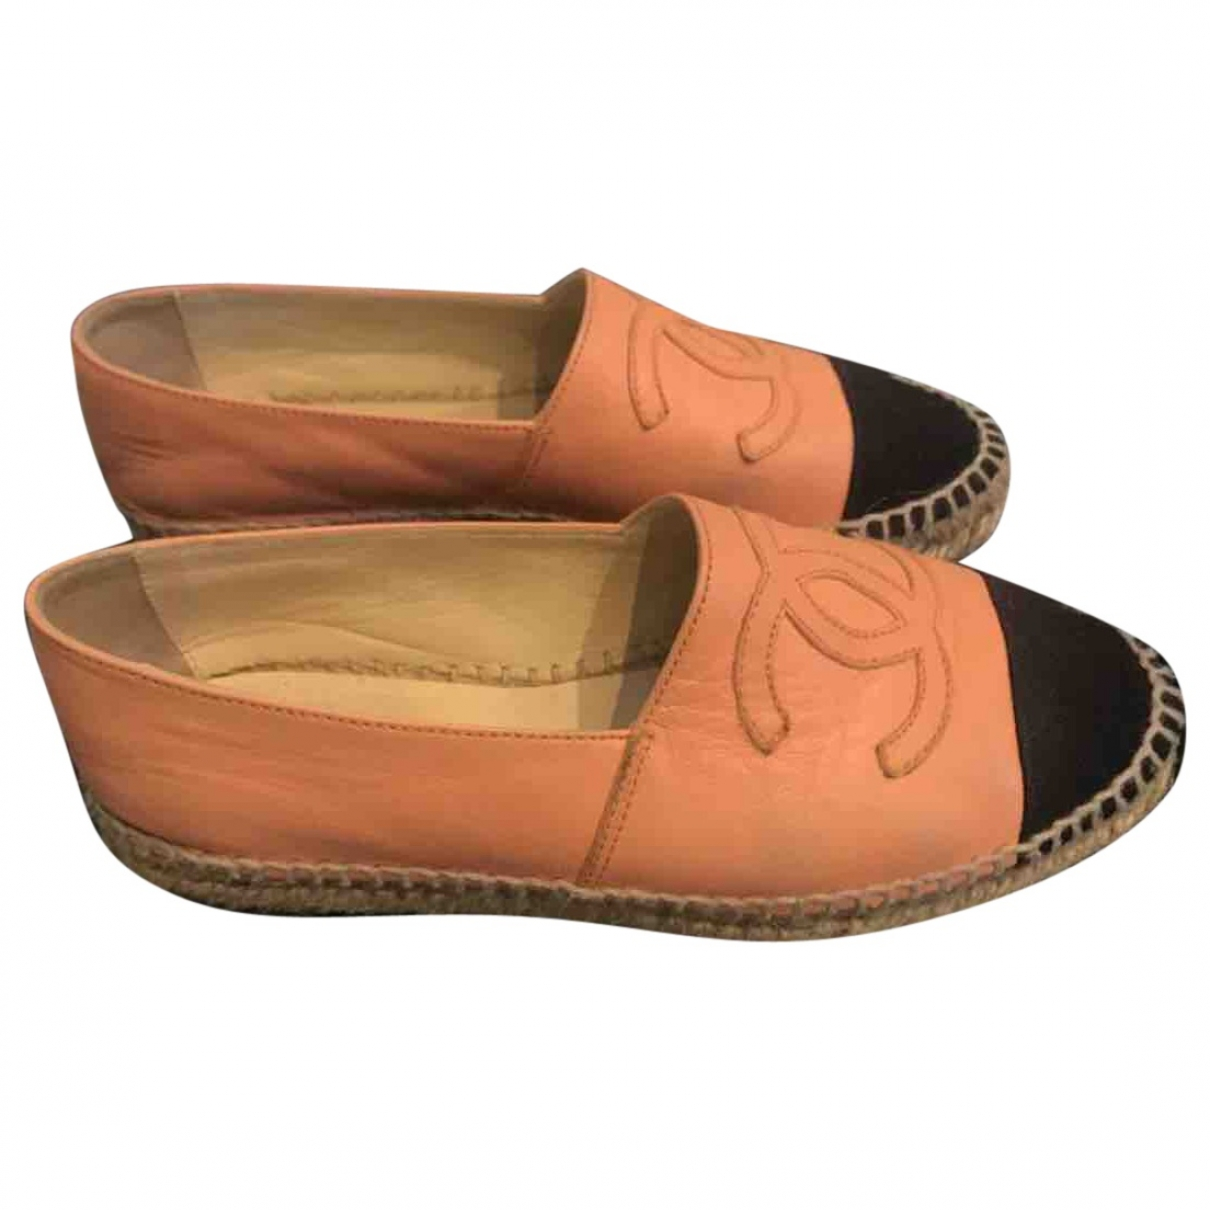 Chanel \N Pink Leather Espadrilles for Women 36 EU